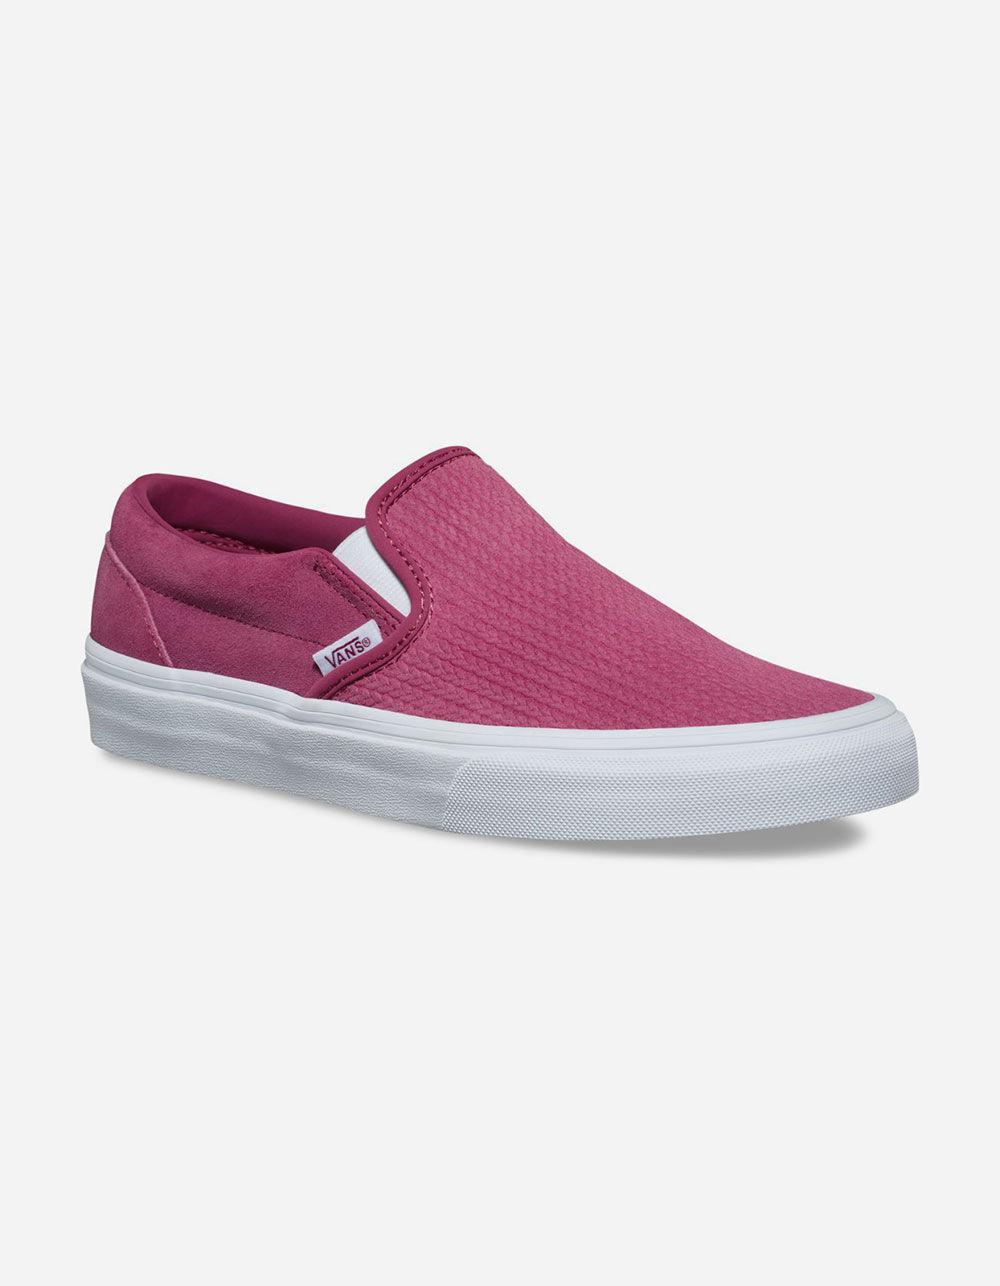 6f0c8d14a5 Lyst - Vans Suede Canvas Classic Slip-on Wine Womens Shoes in Purple